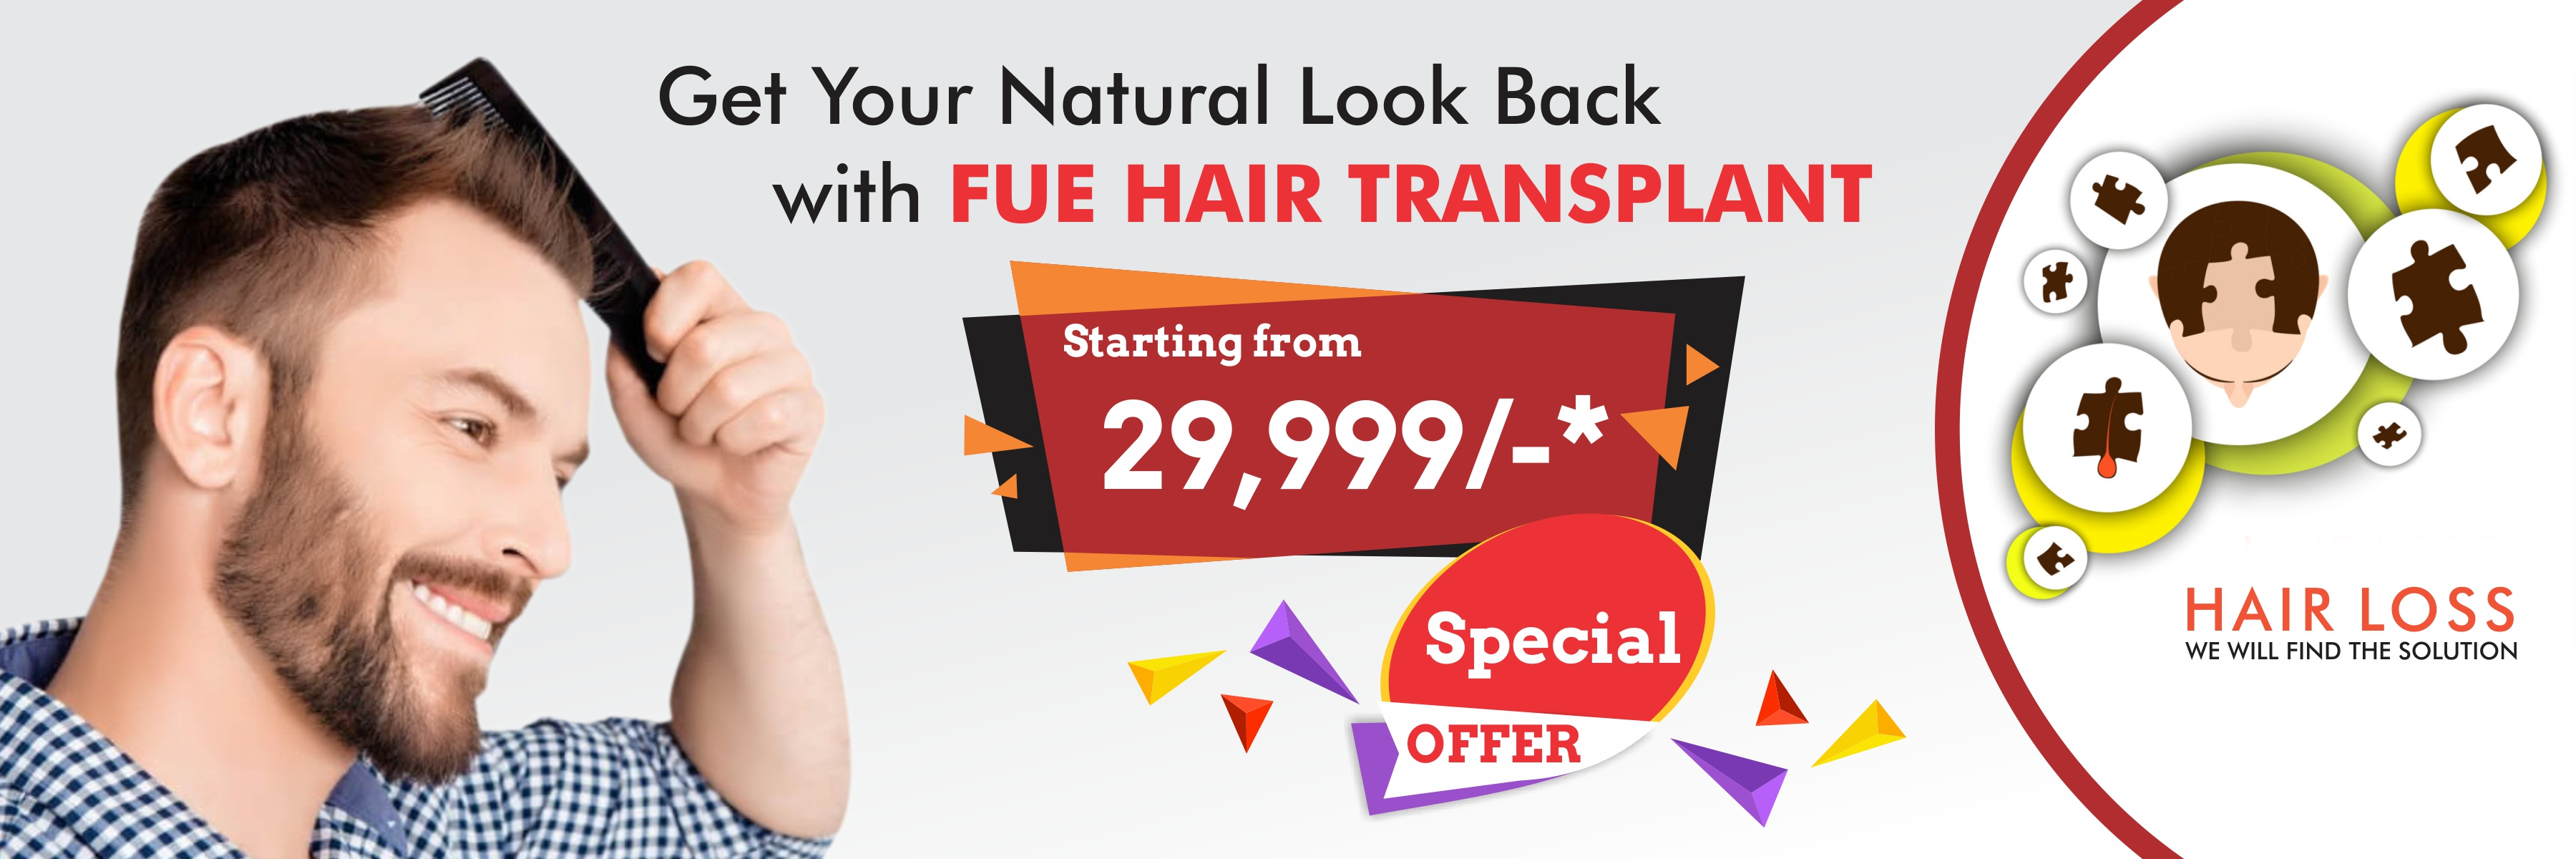 Hair Transplant Services in Punjab